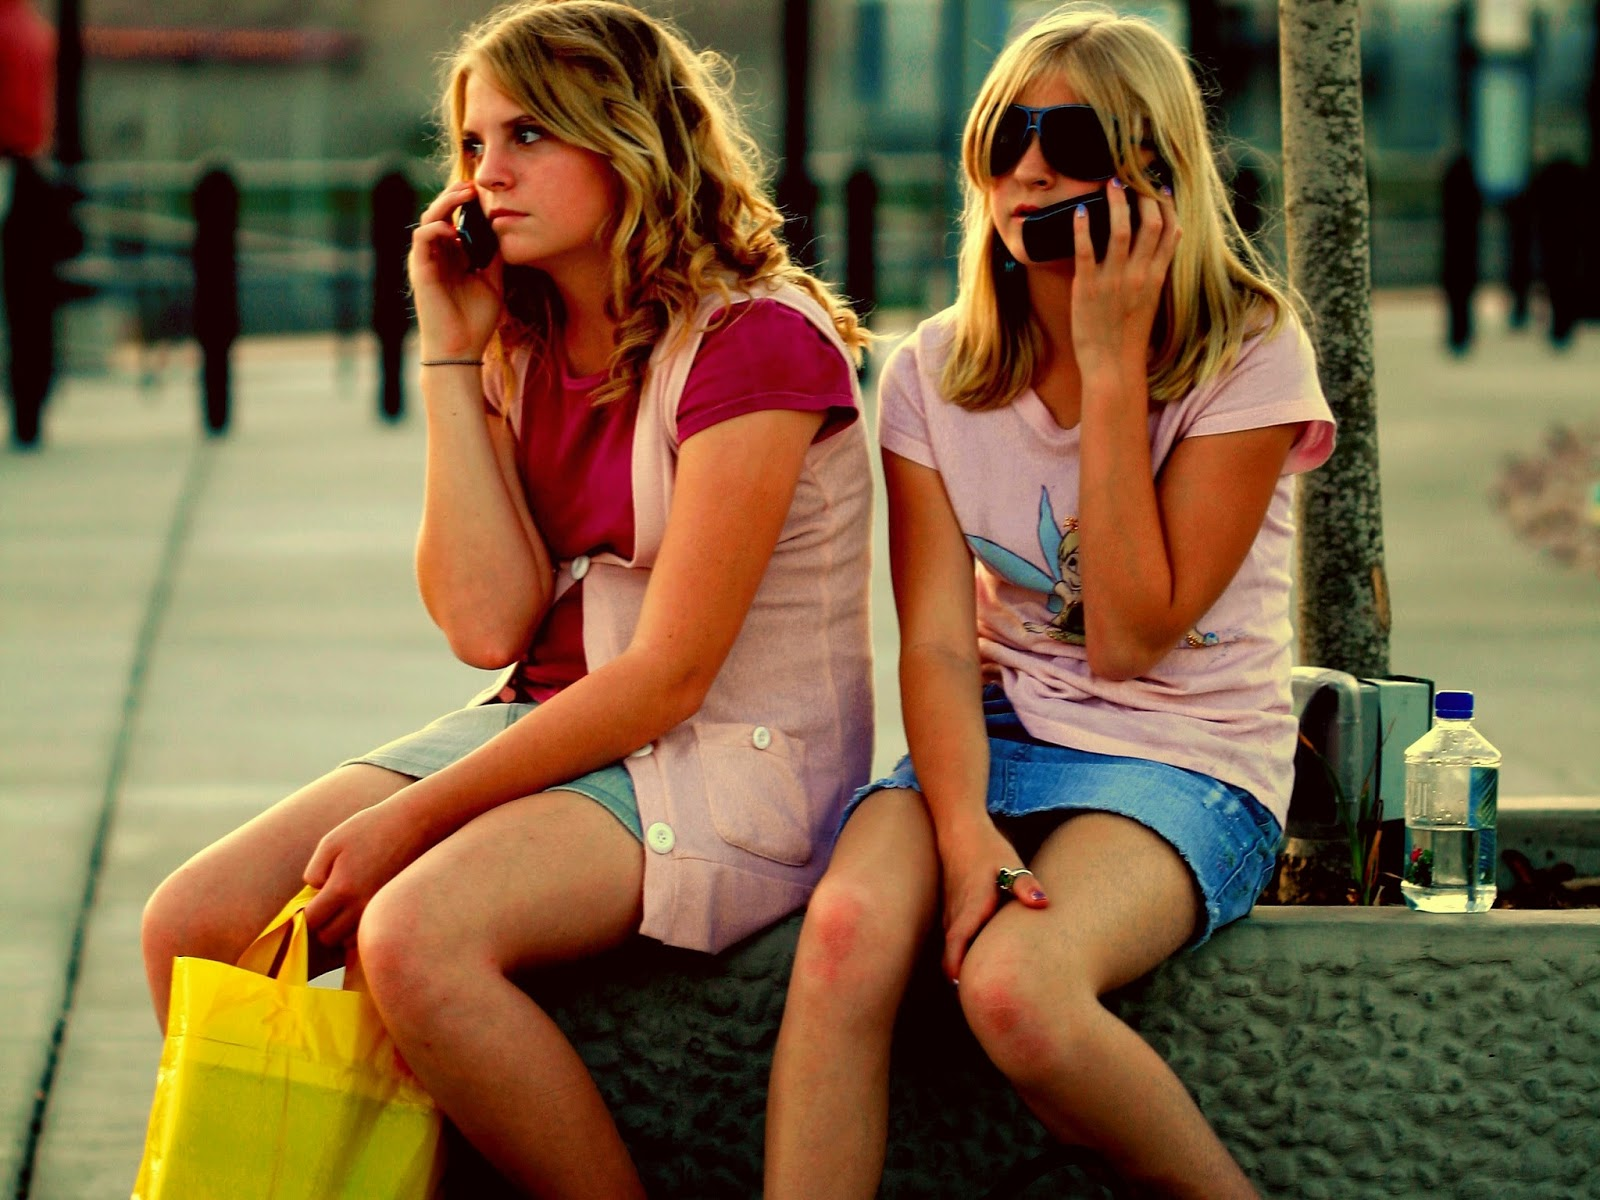 Know girls friends wish, she loves you or not, how to know your lover love you or not